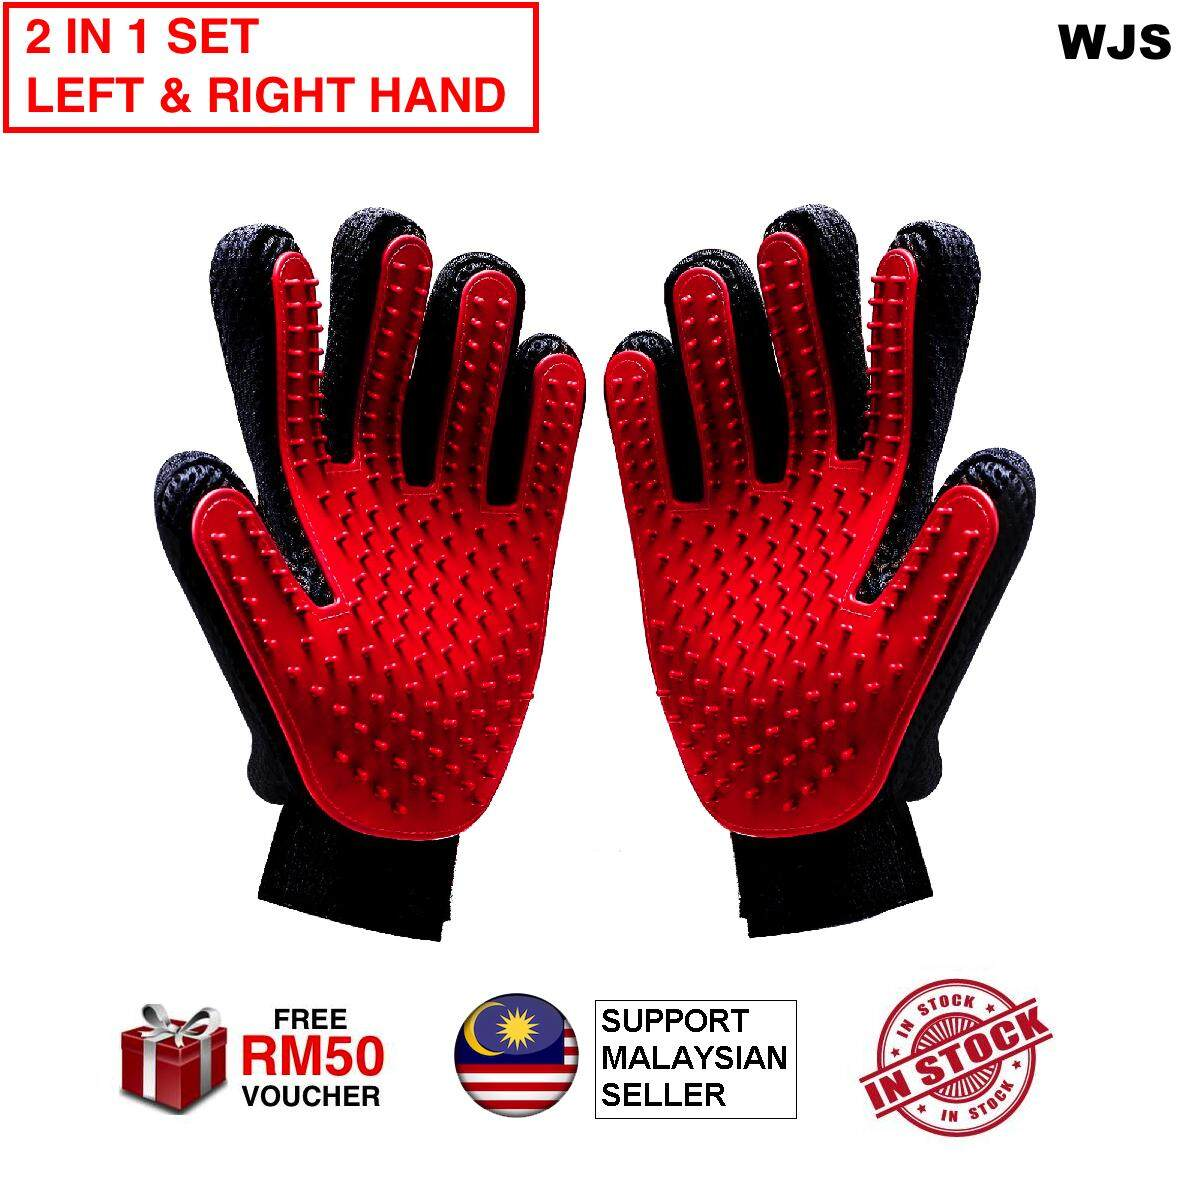 (2 IN A SET - LEFT & RIGHT HAND) WJS True Touch Pet Glove Dog Glove Cat Glove Grooming Deshedding Hair Remover Fur Penggosok Bulu Kucing - Red [FREE RM50 VOUCHER]